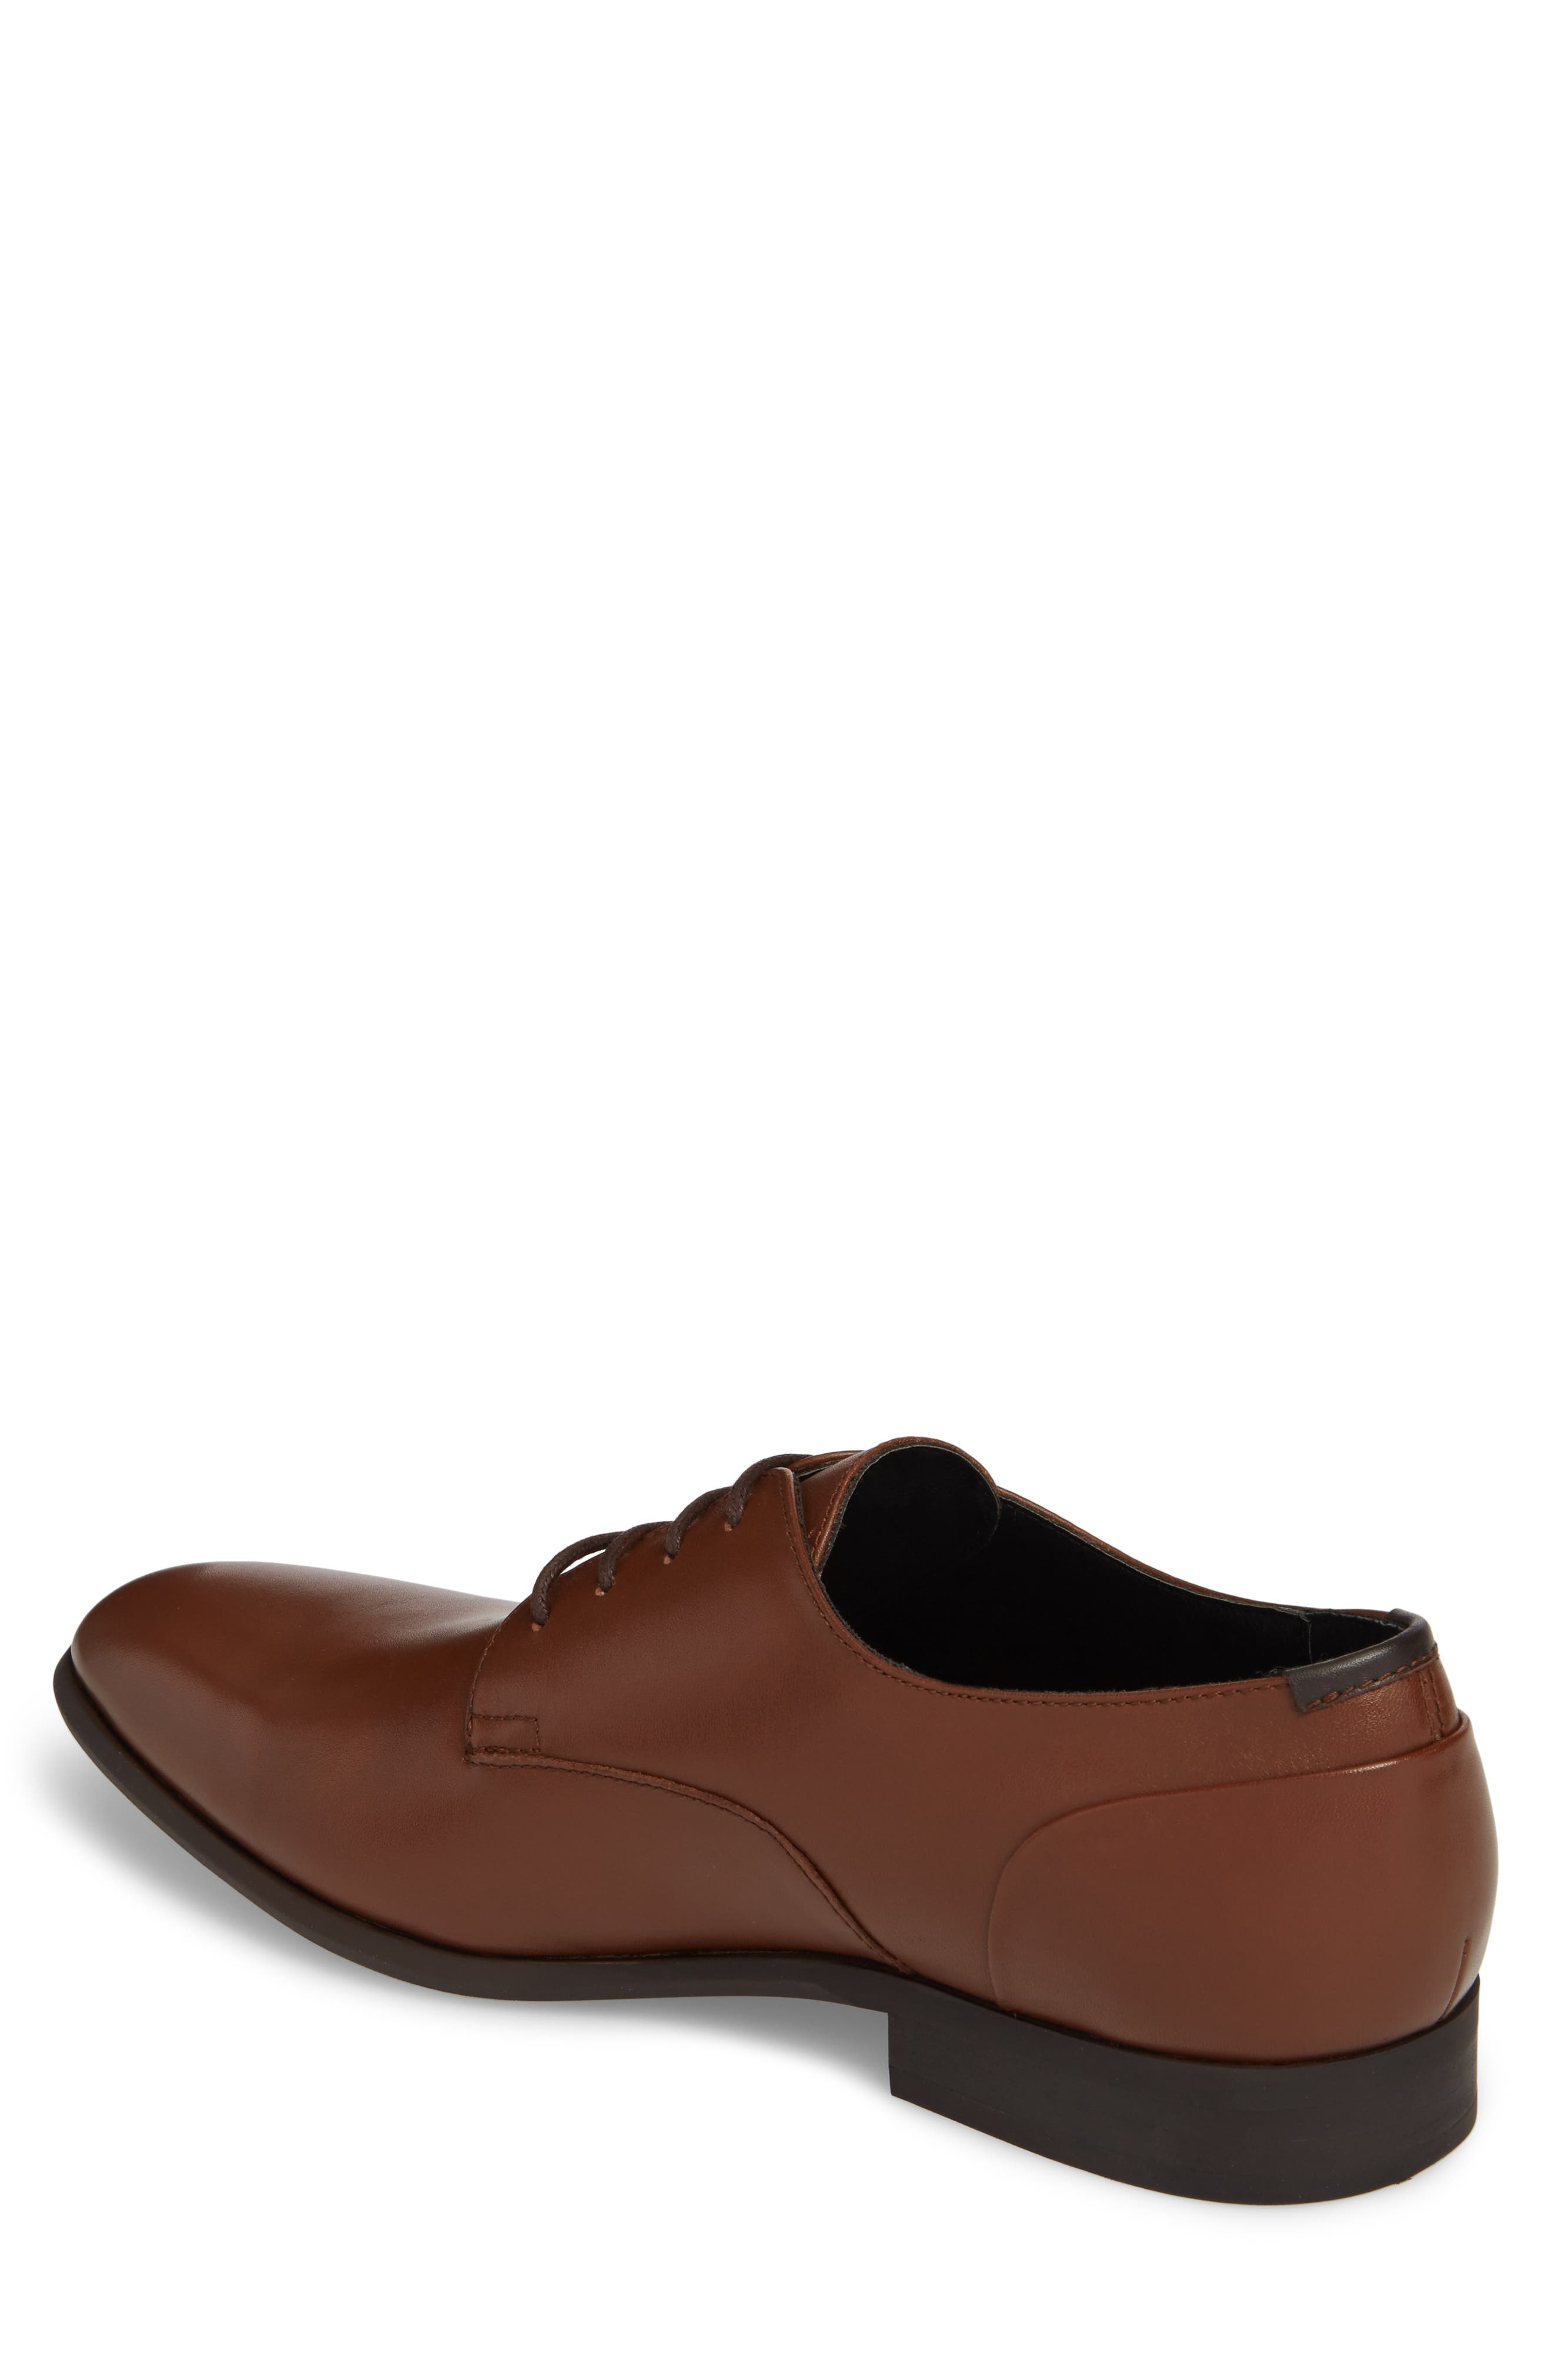 Lucca Plain Toe Derby,                             Alternate thumbnail 2, color,                             Tan Leather